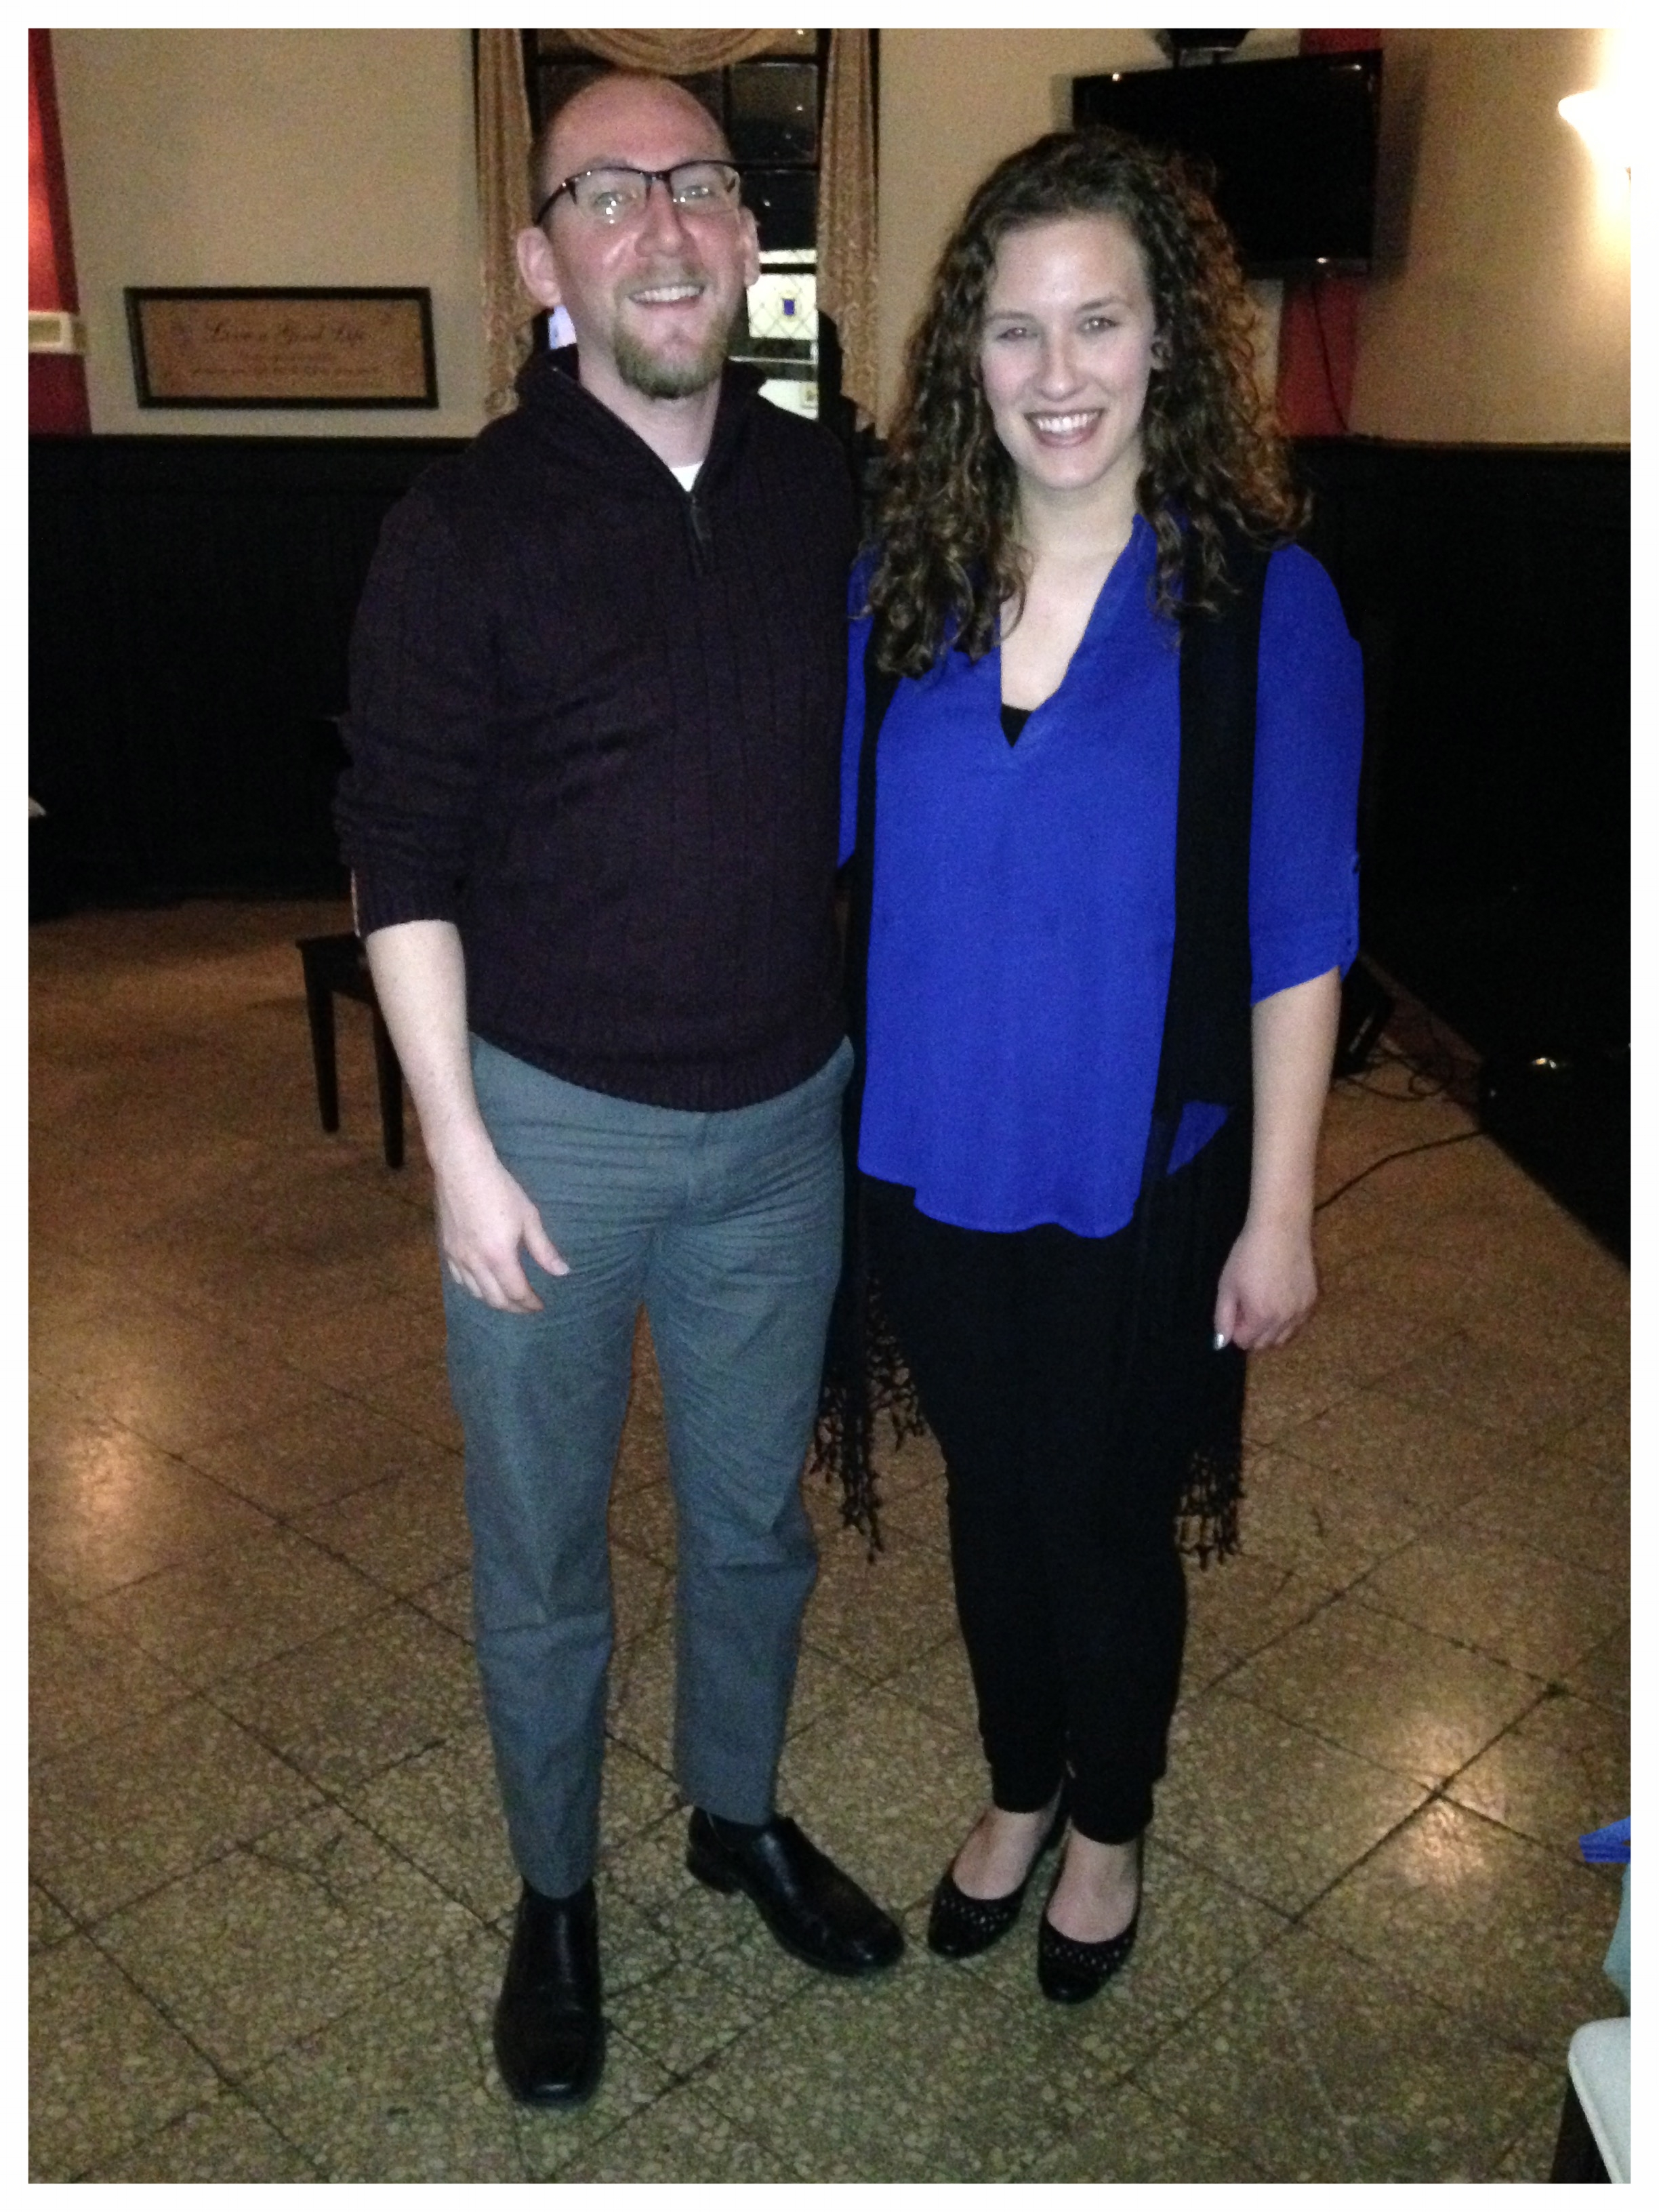 """Brian and Chelsea at their first gig in """"The Supper Club"""" in Greensburg, PA."""